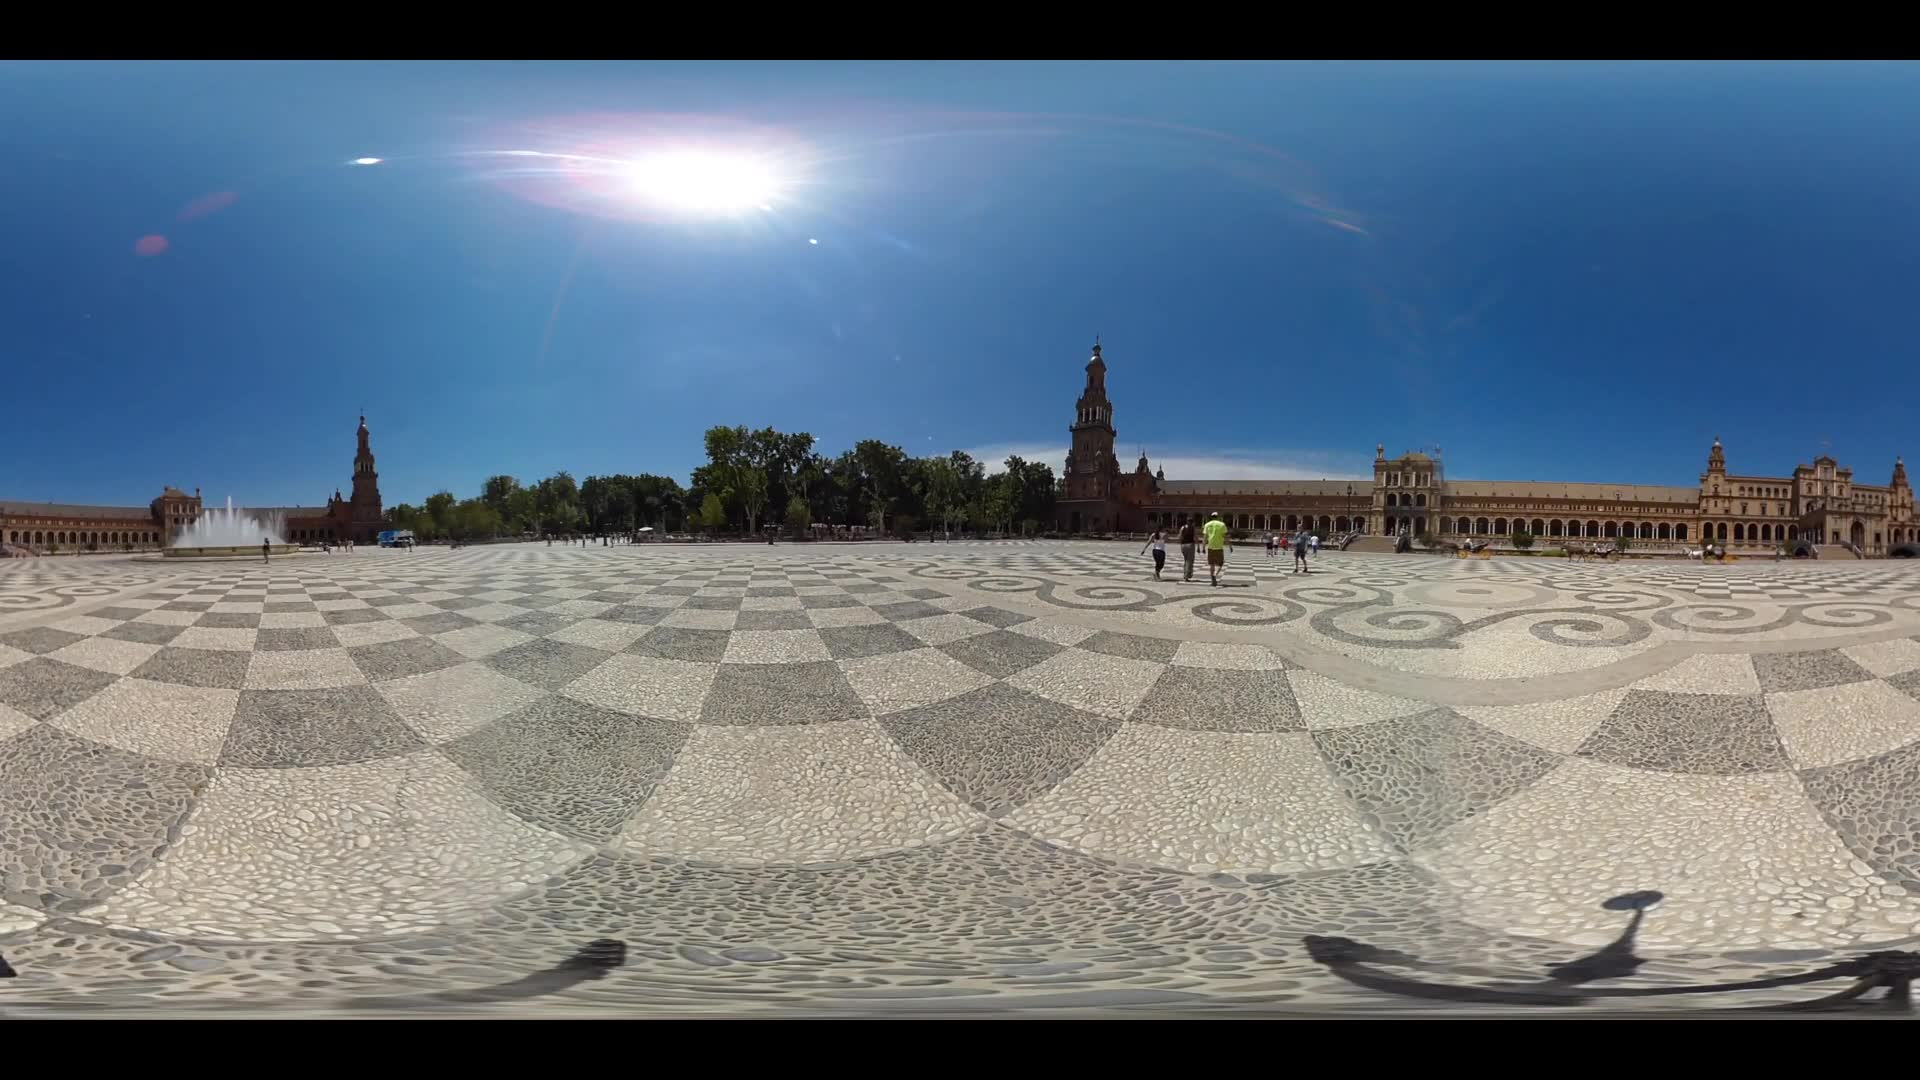 Virtual Reality 360 view of the Plaza de Espana in Seville Spain